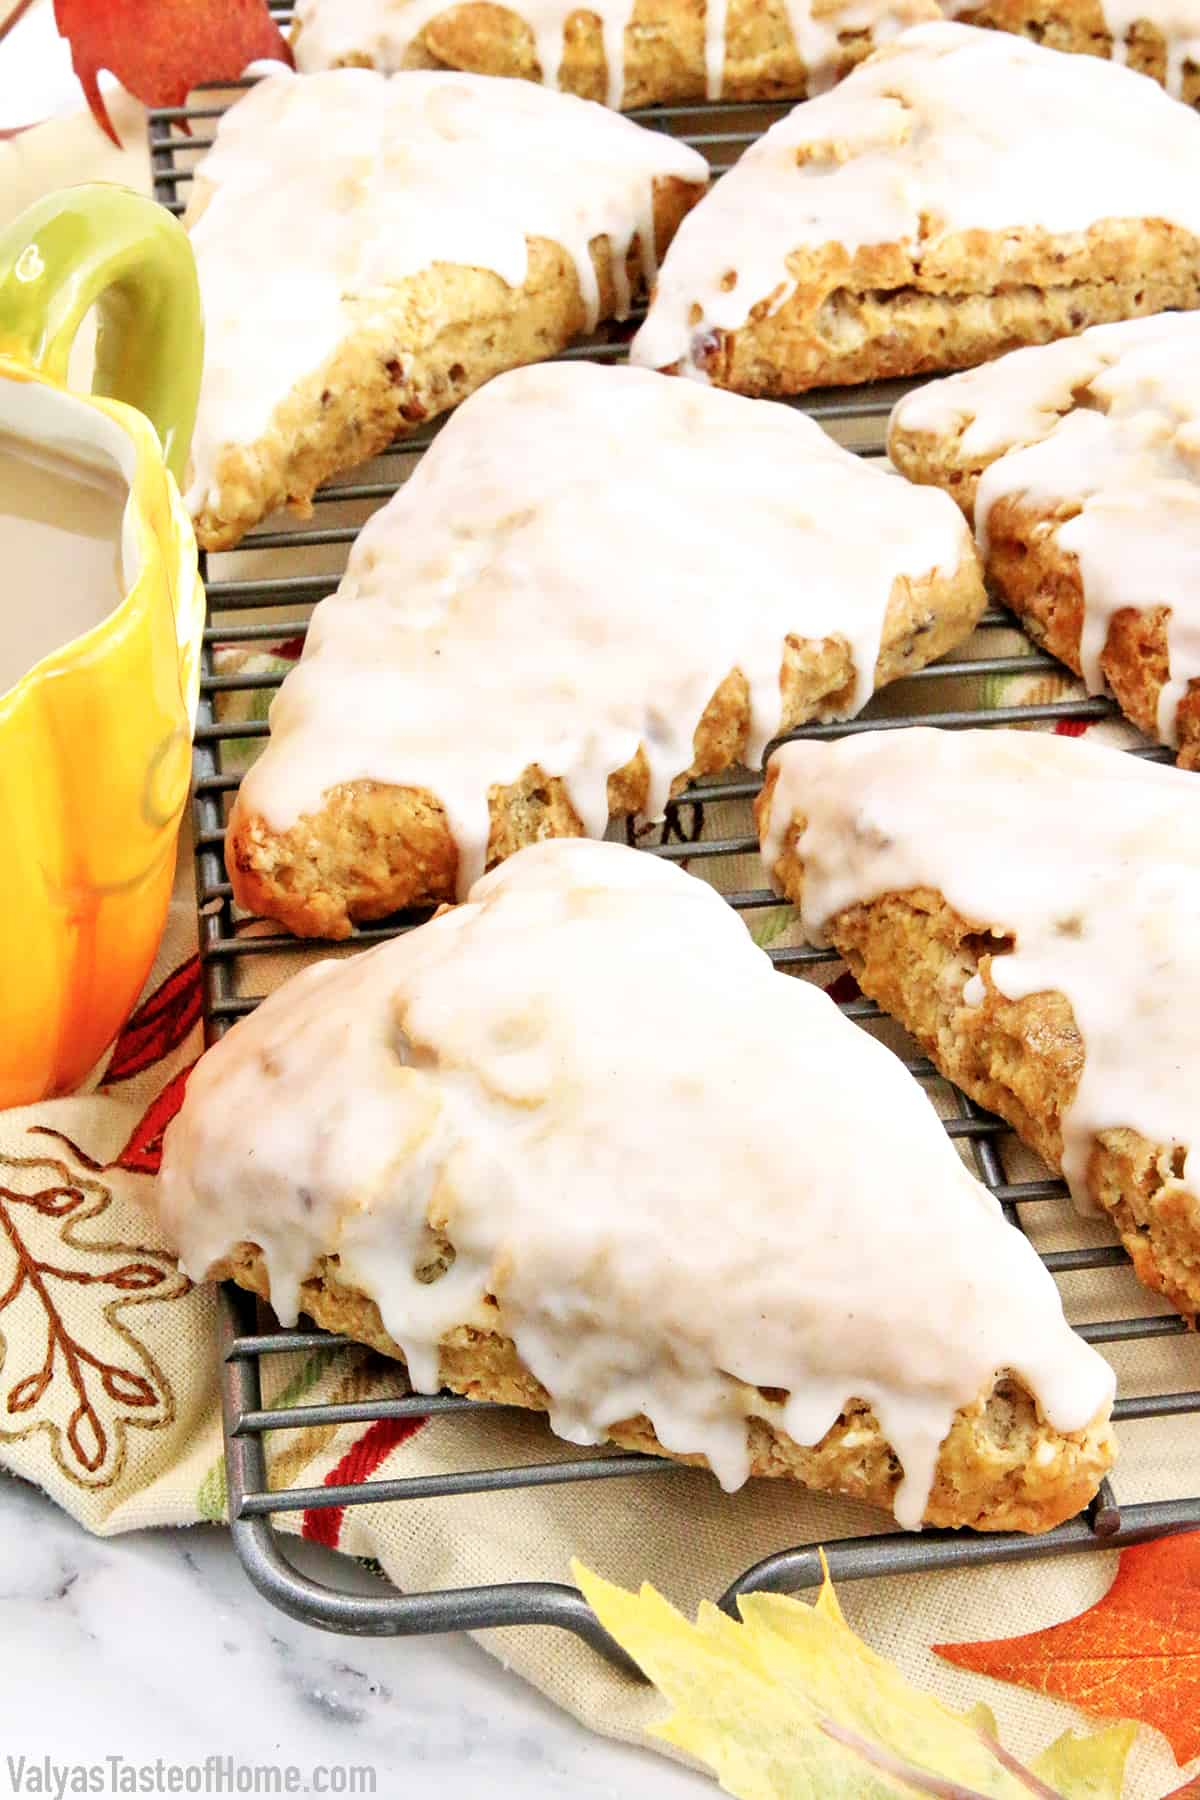 These Glazed Pumpkin Pecan Scones are soft, flaky, buttery, and bursting with cinnamon and pumpkin flavors. They are super simple to make but very delicious fall treat that is so much loved in my family. #pumpkinscones #glazedpumpkinpecanscones #breakfast #easyrecipe #valyastasteofhome